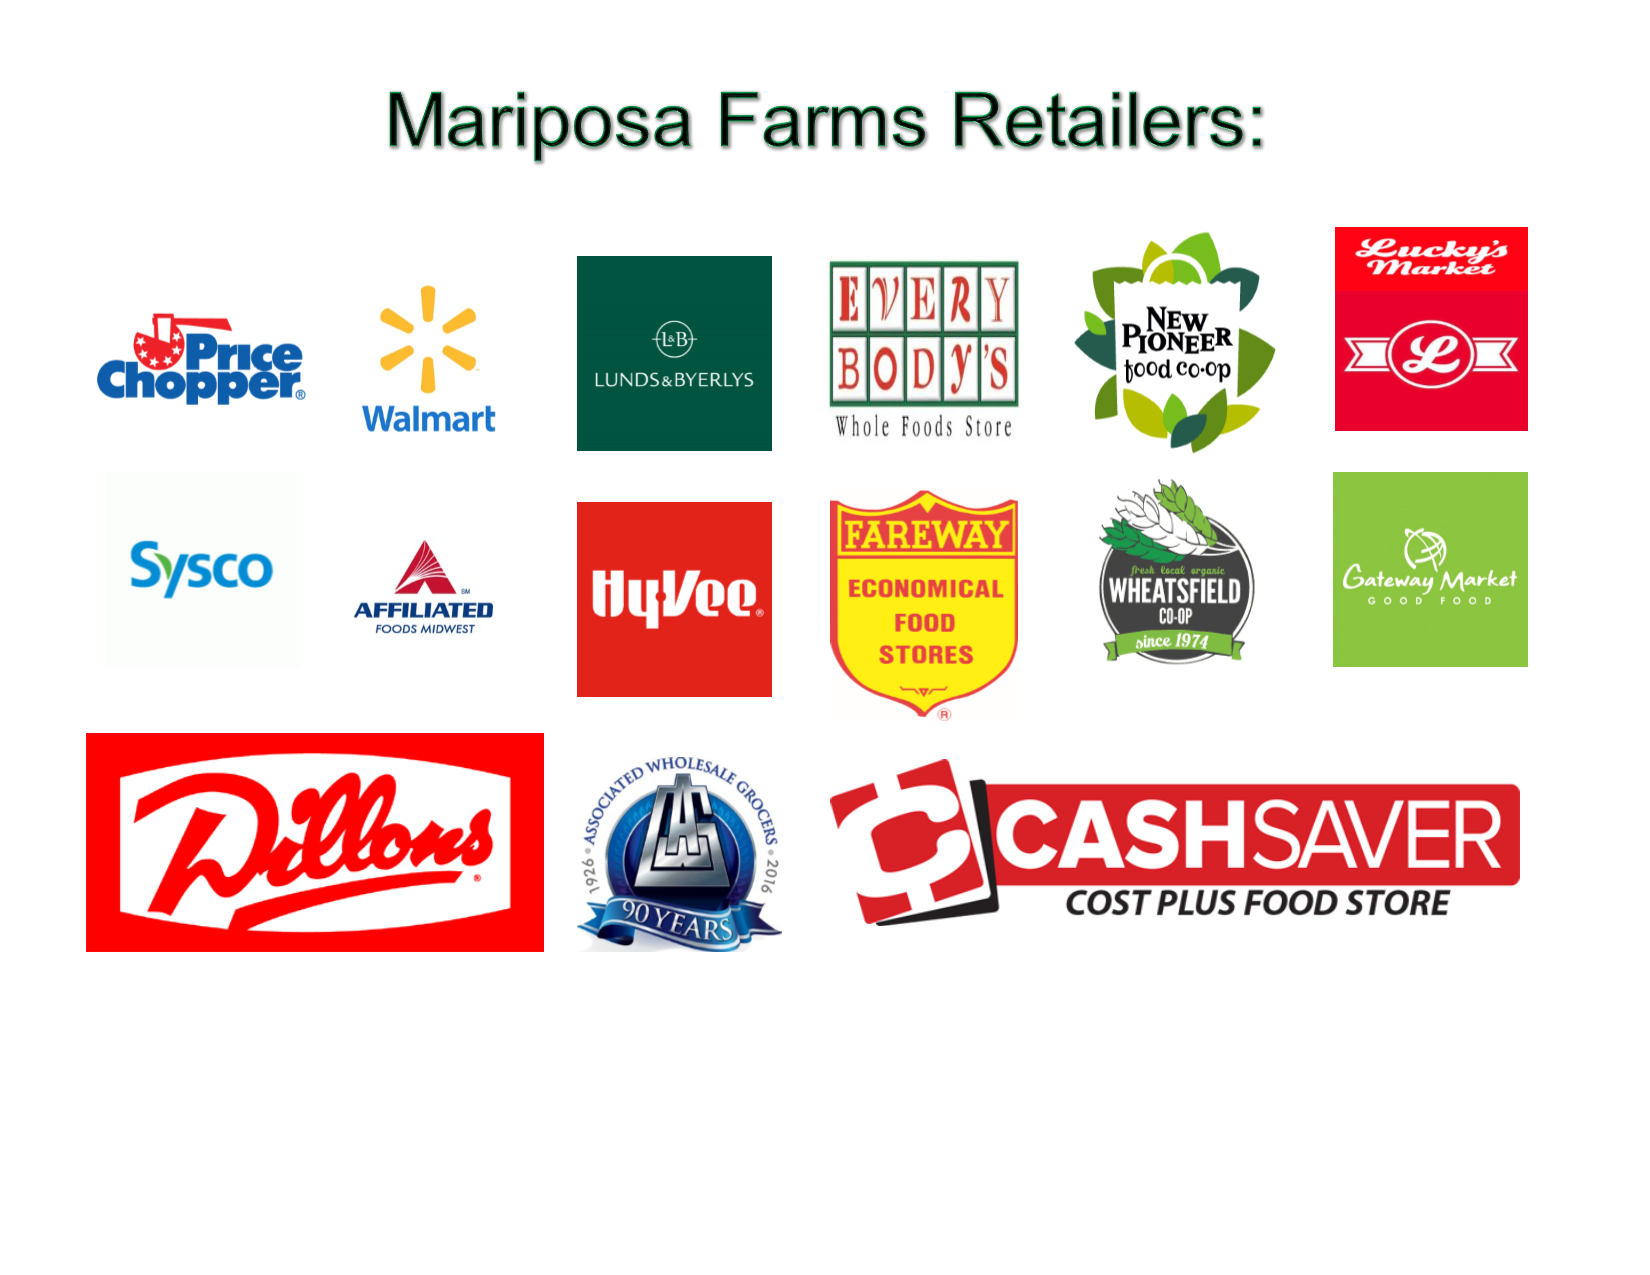 mariposa-farms-retailers